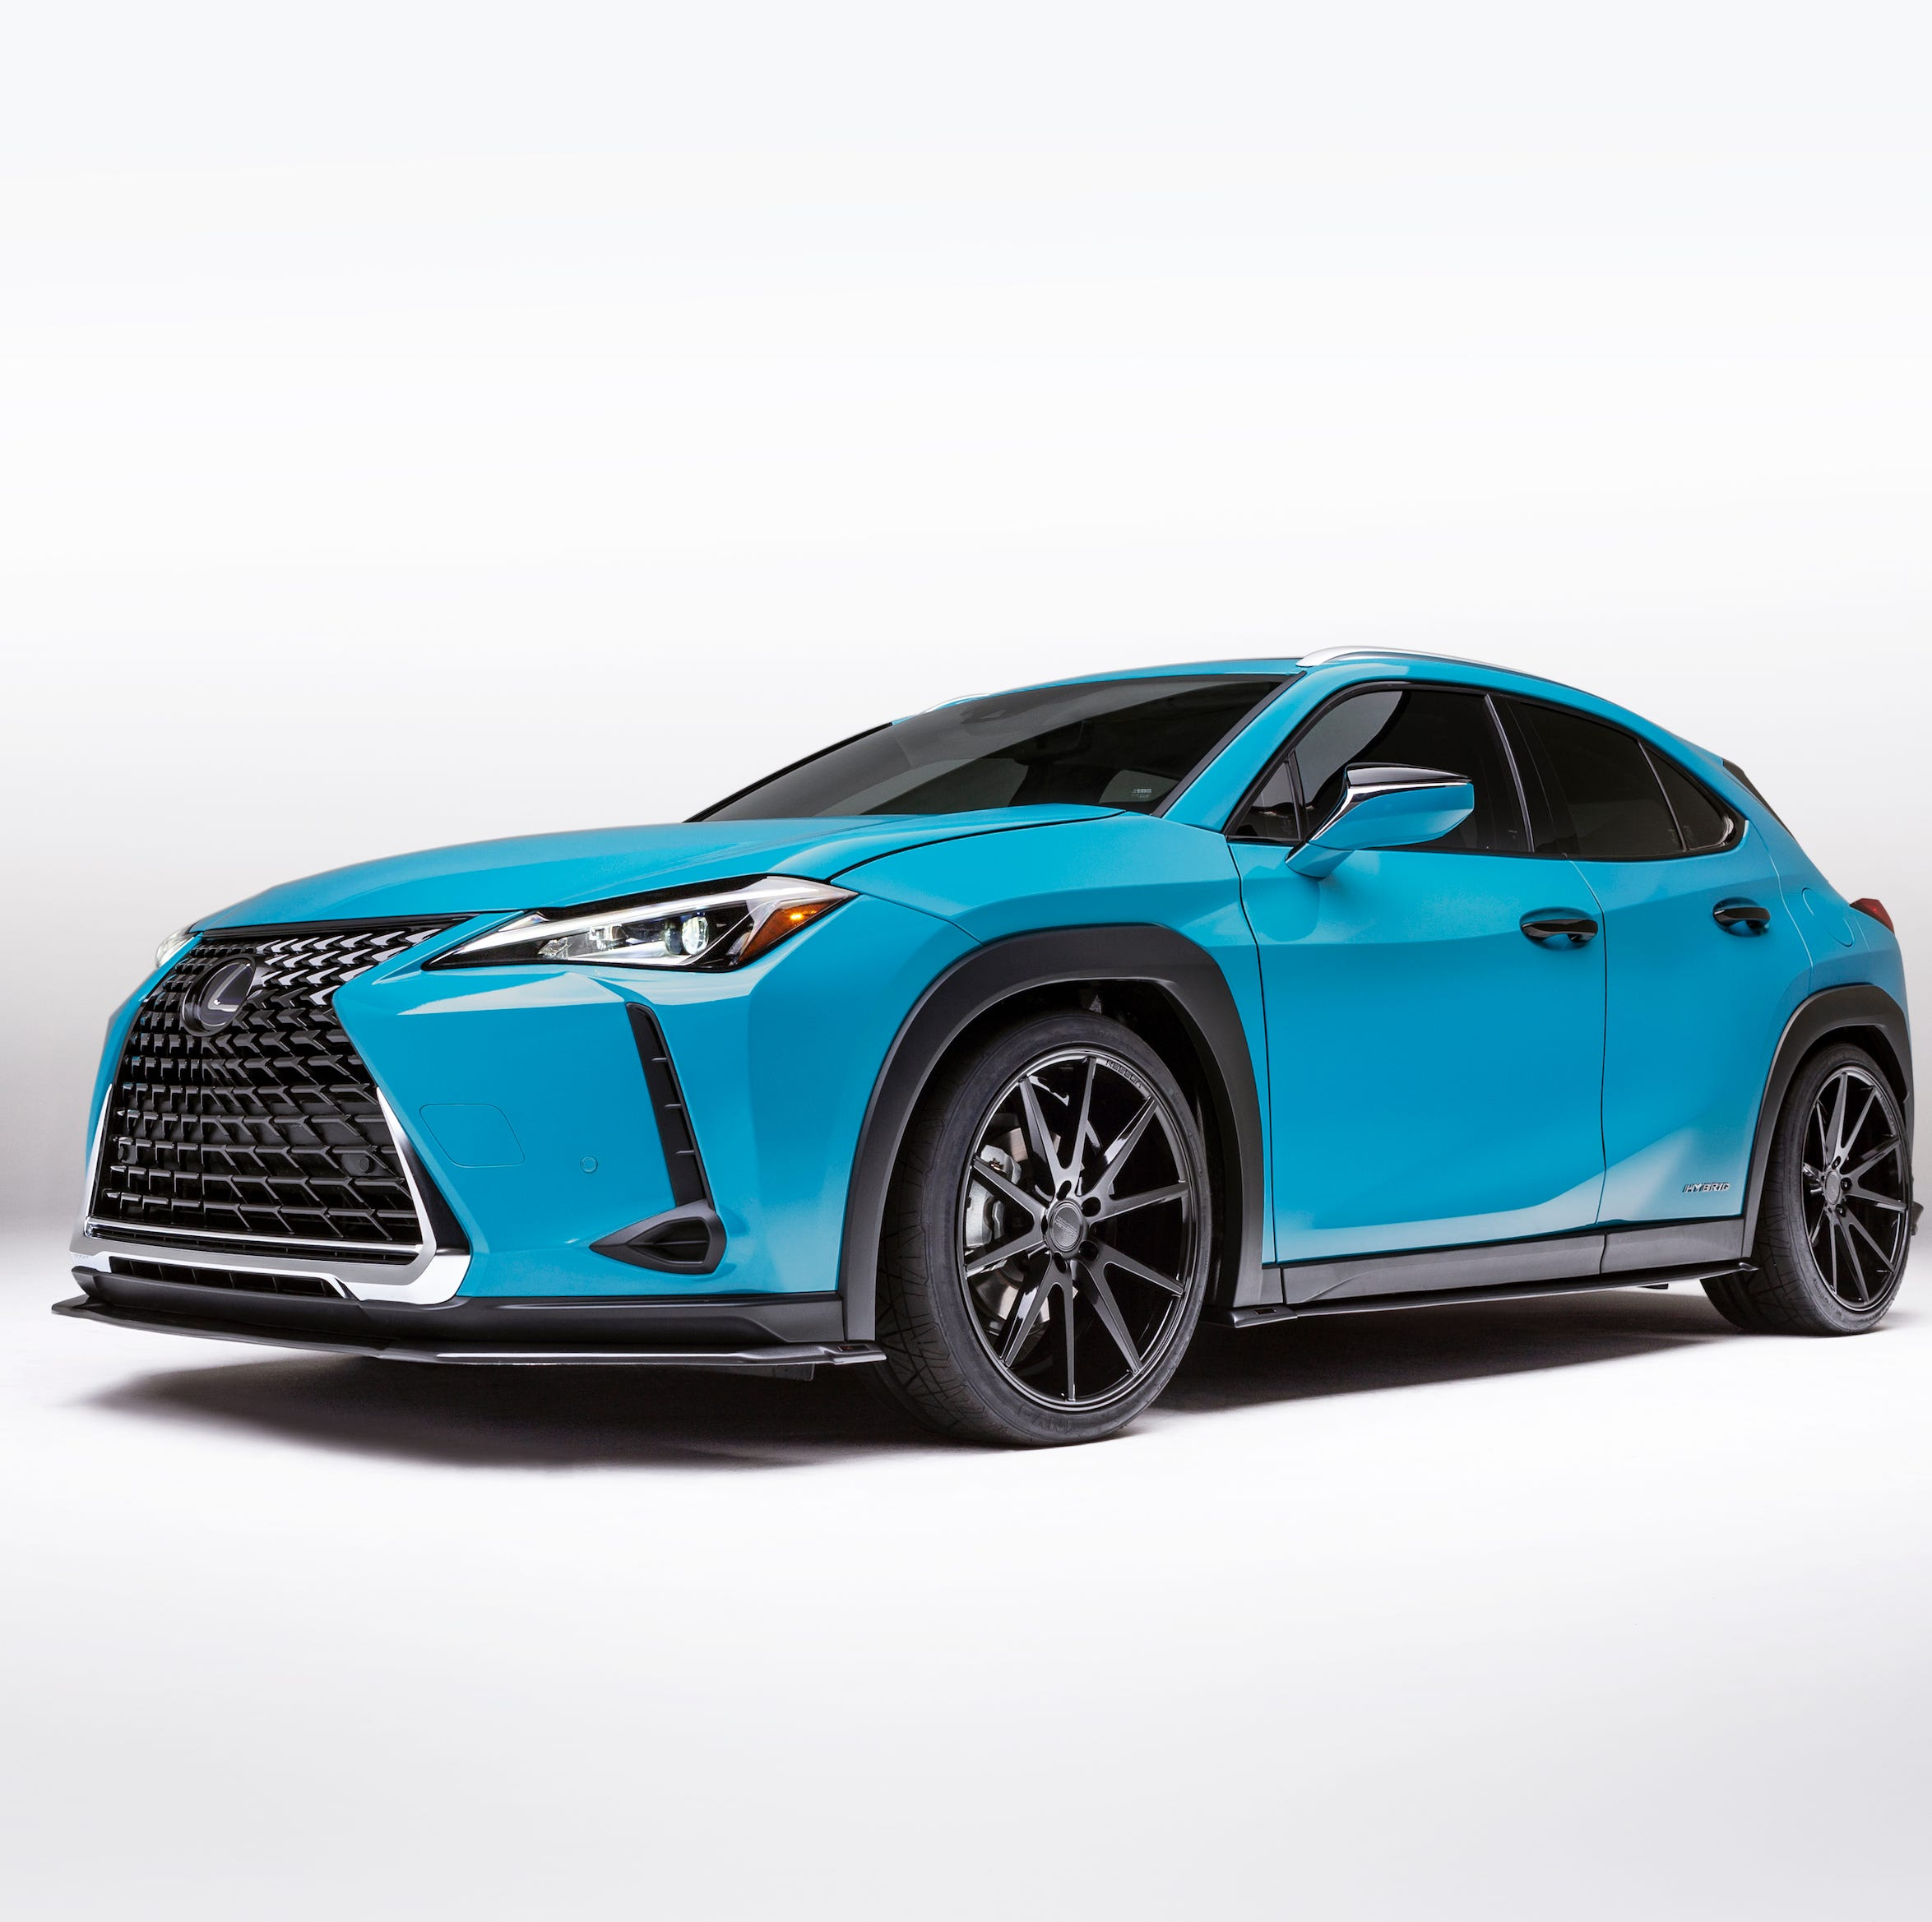 2019 Lexus UX built for around-town performance